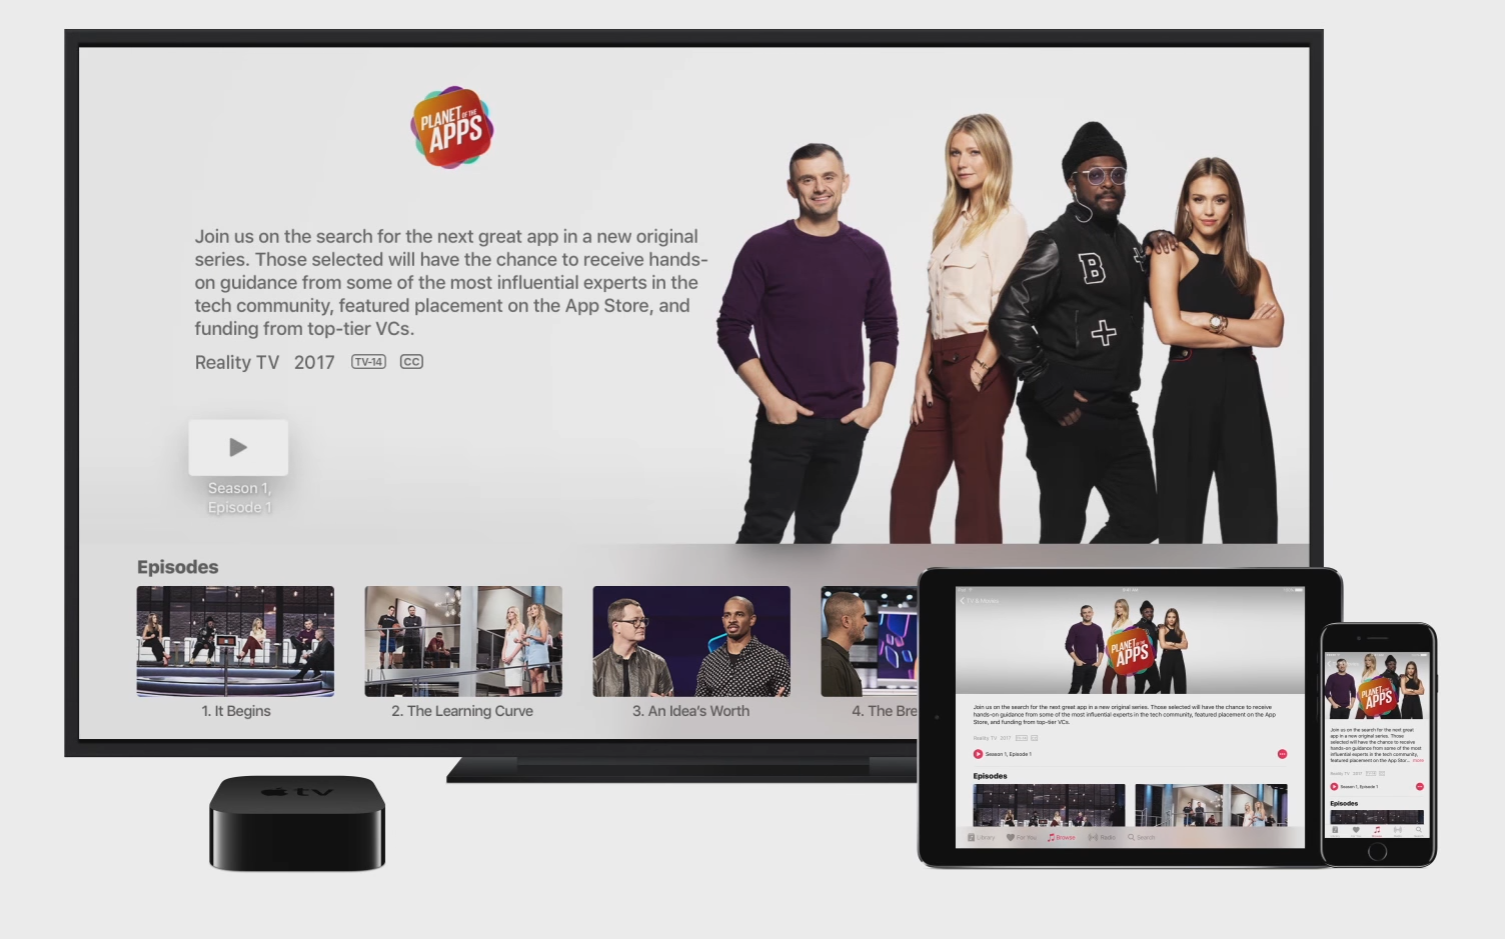 Apple Music to Host Planet of the Apps and Carpool Karaoke